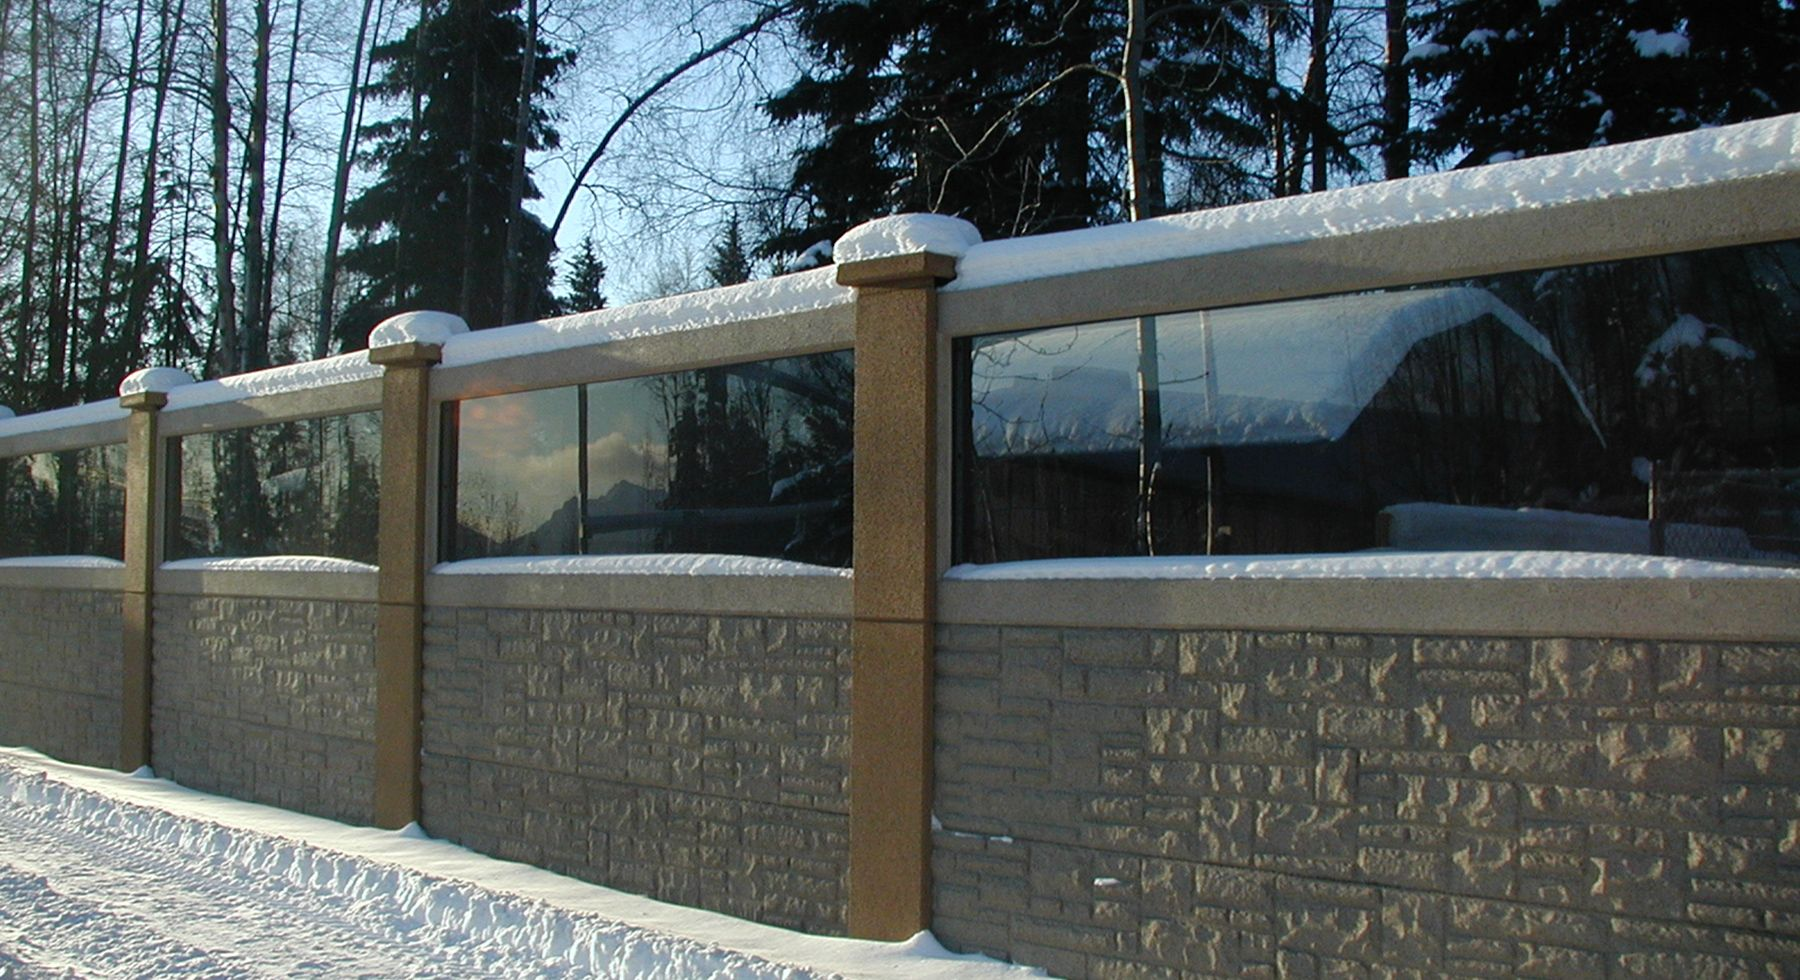 Acoustic Sound Barrier Wall And Highway Sound Wall Barrier Panels